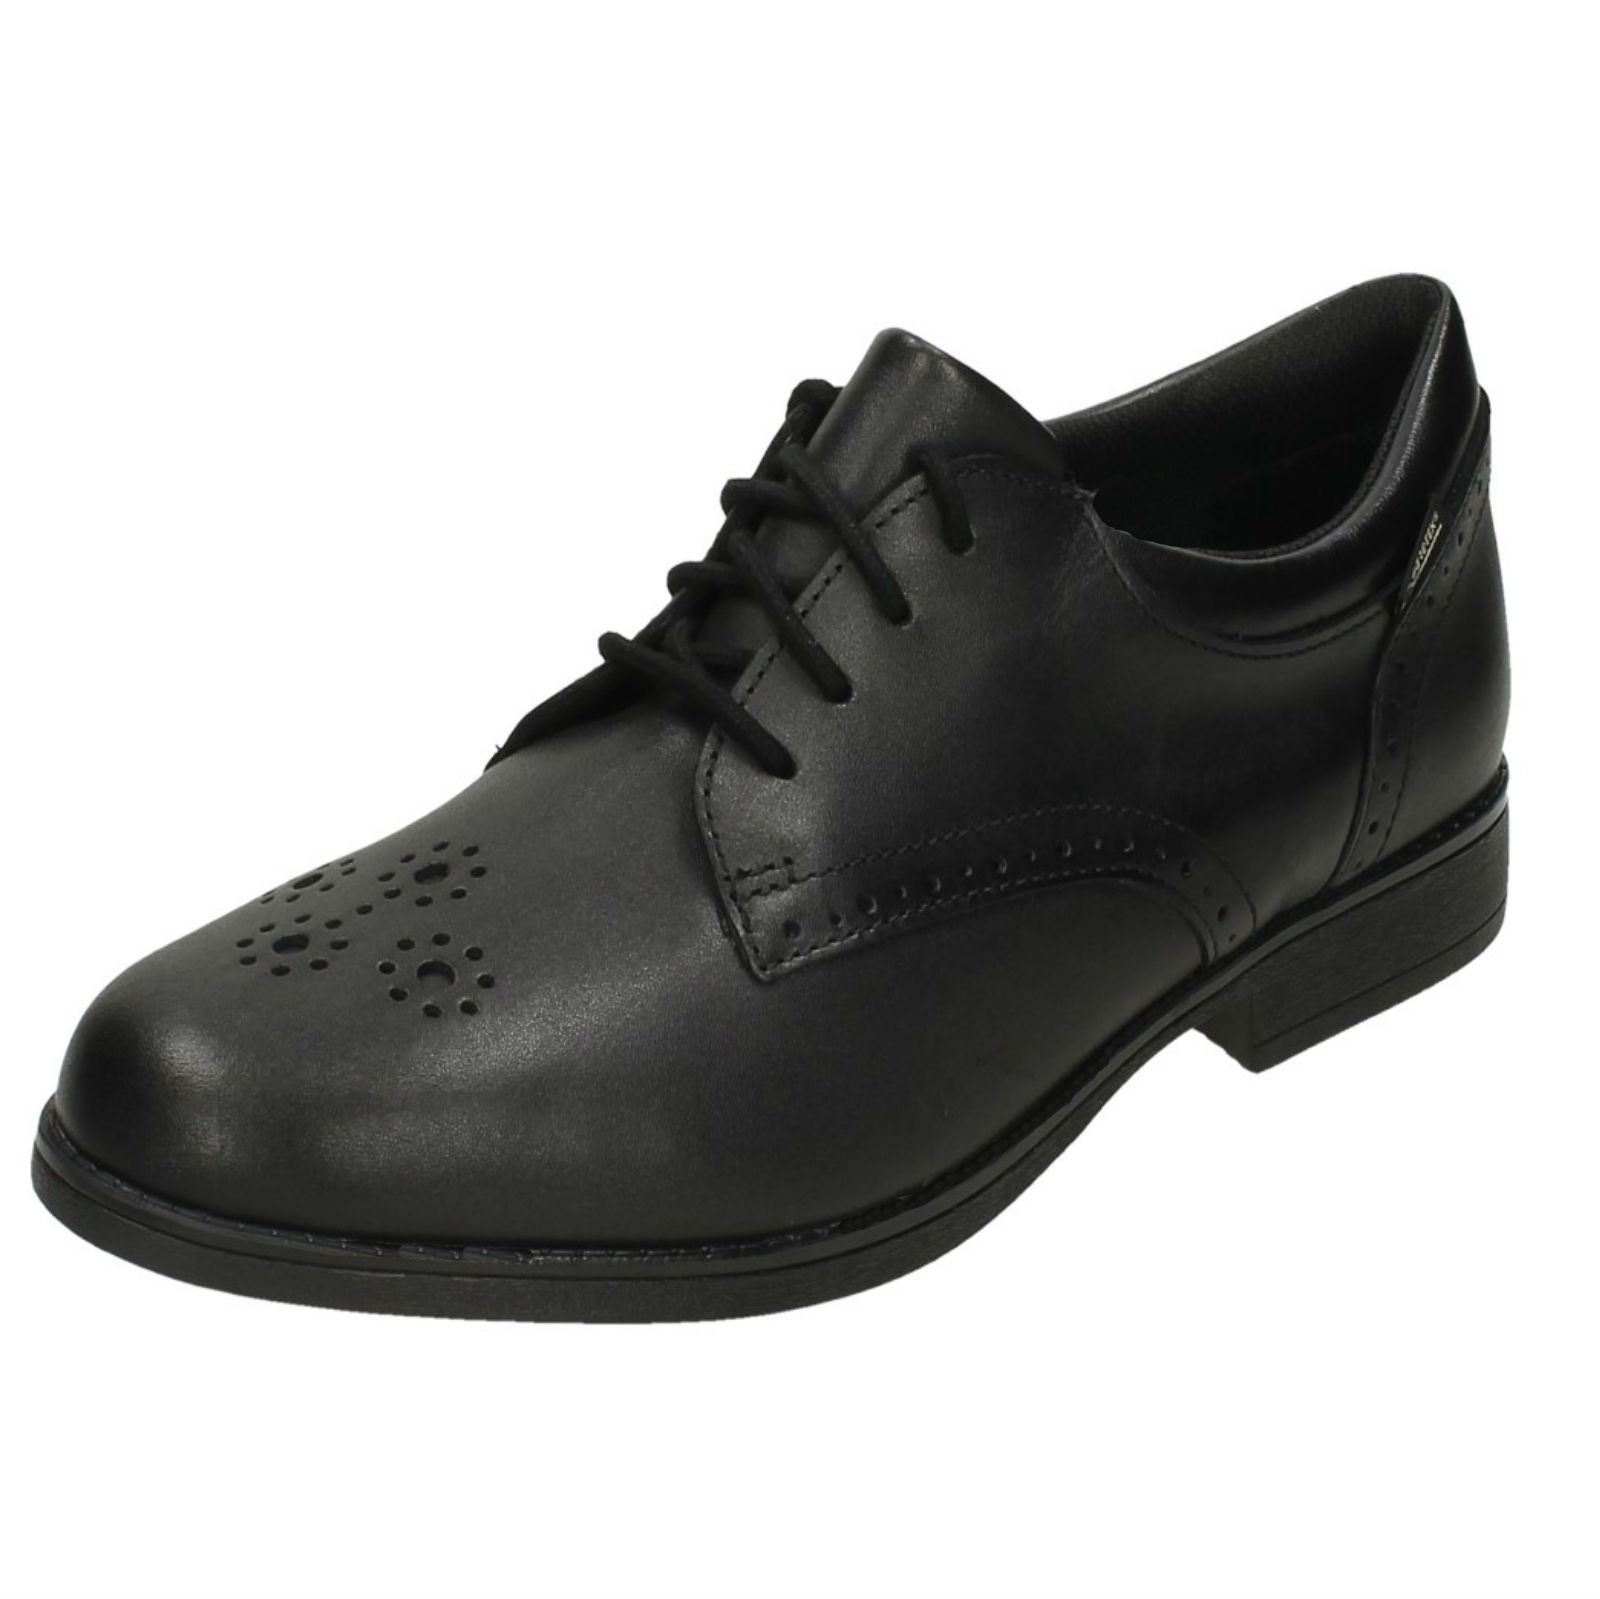 Clarks sami Black Brogue Por Fudge School Niñas pirata Shoes Gtx nYqExU7z7t